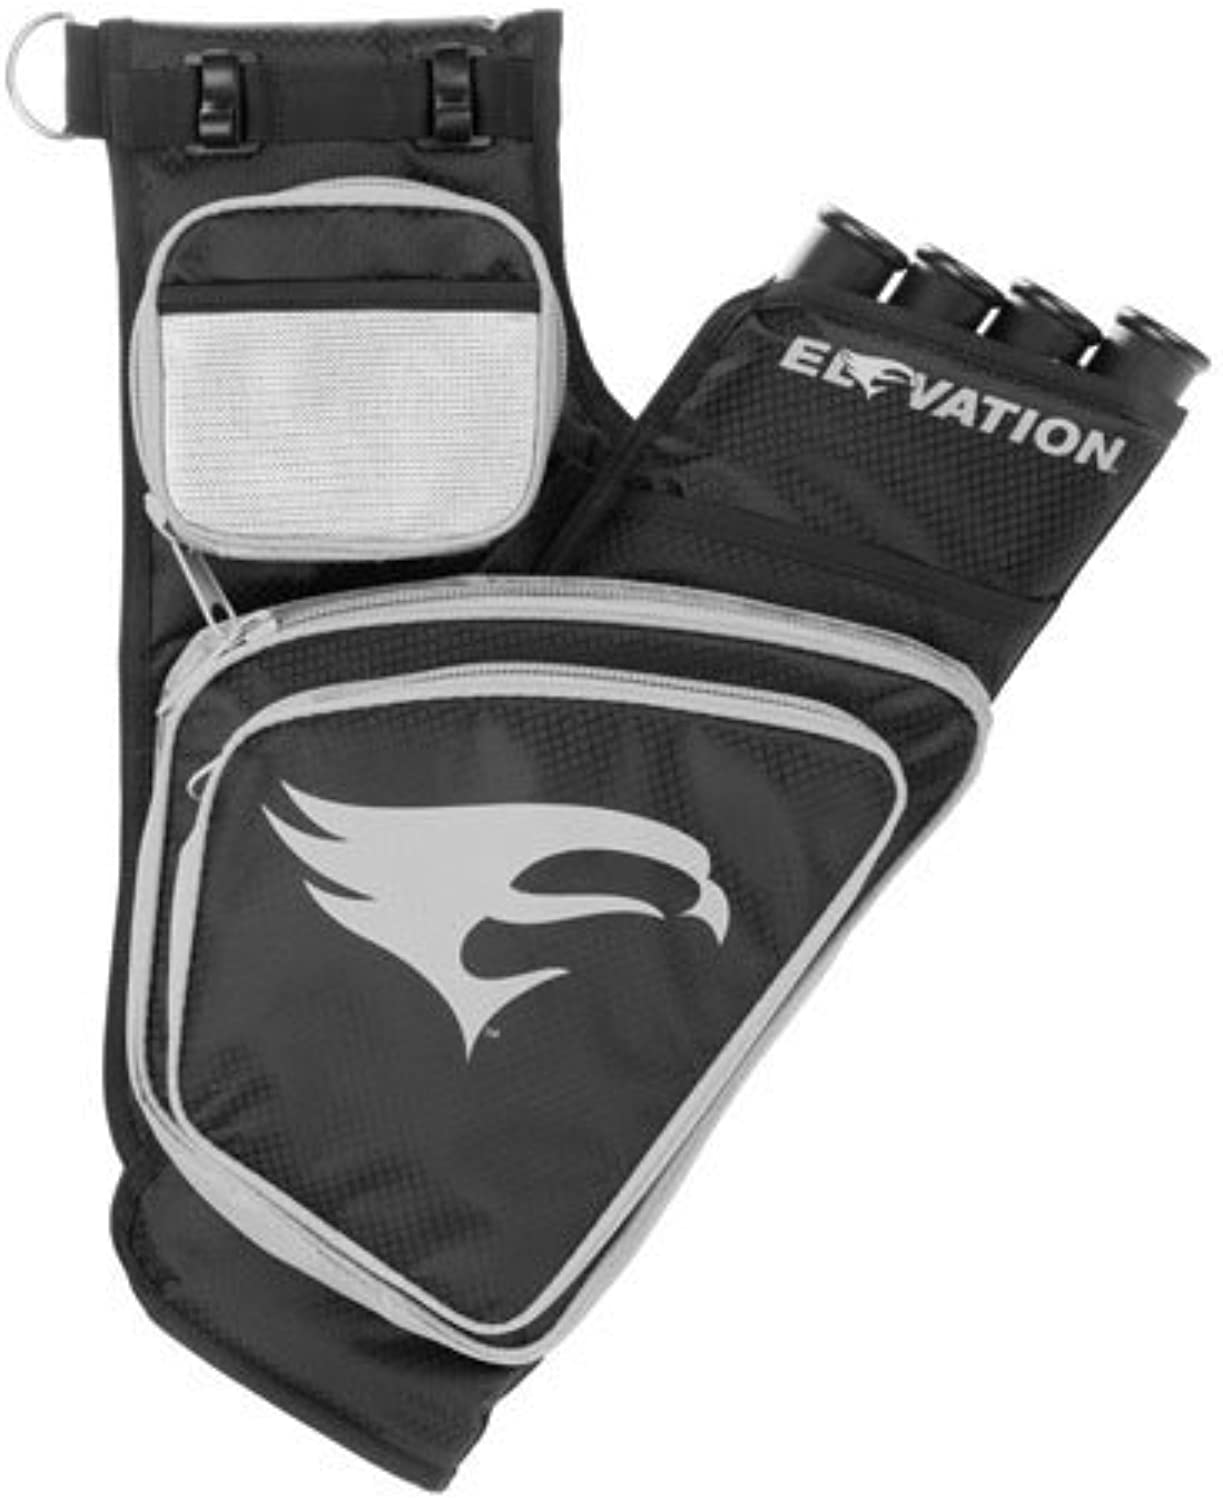 Omp Elevation Trasition Hip Quiver Black Silver Right Hand